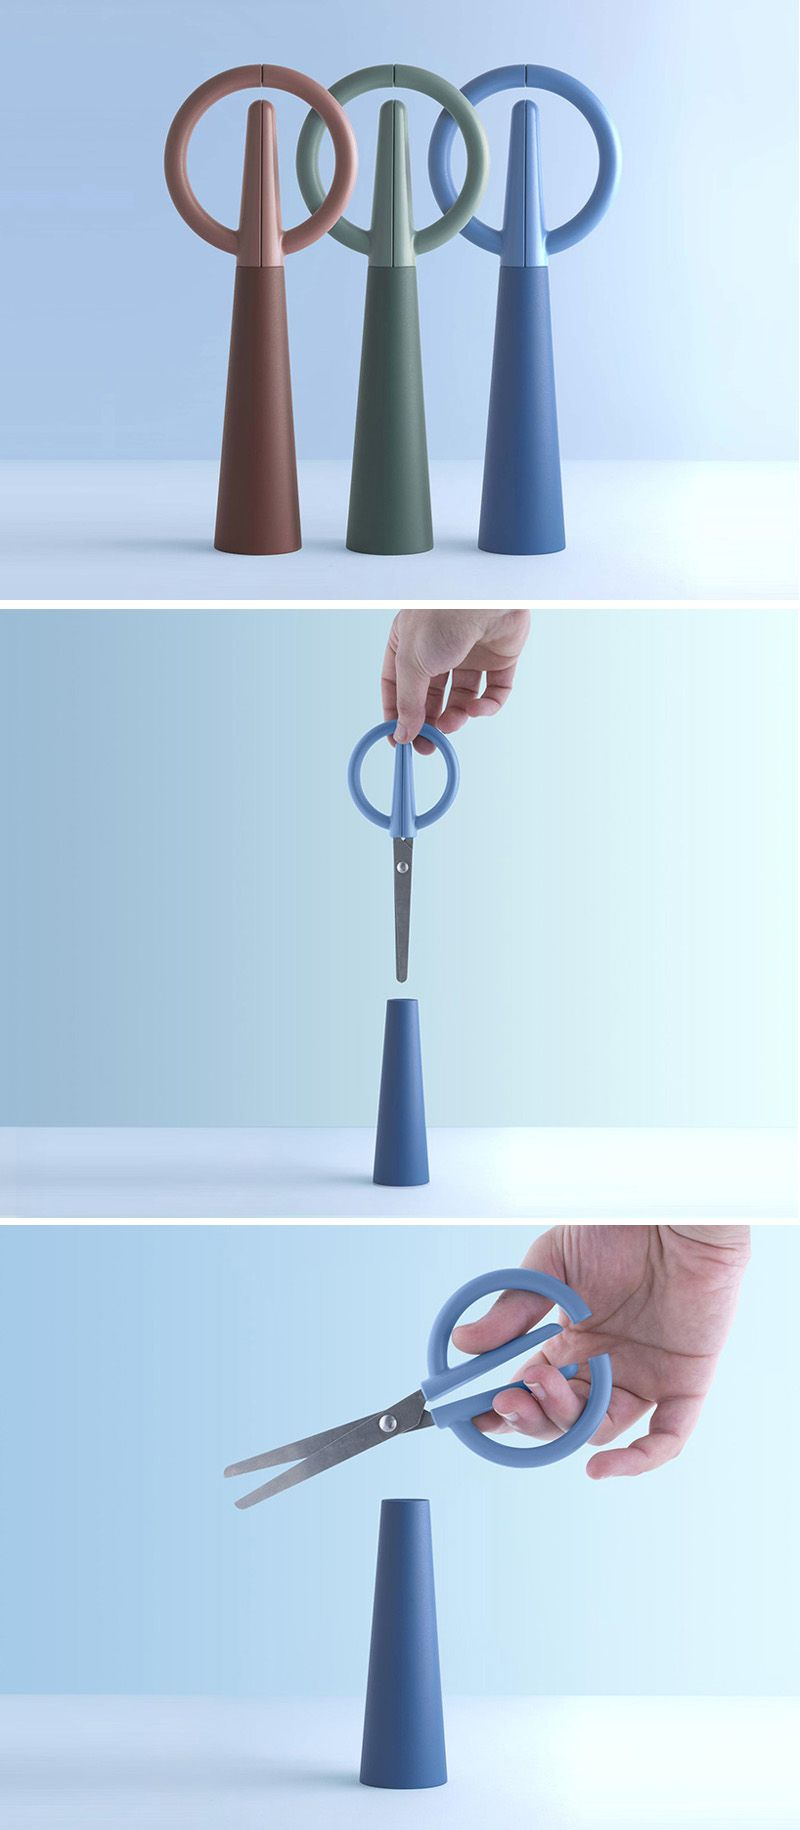 alessio romano designs scissors hidden as a decorative object home design products - Home Design Products Anderson In